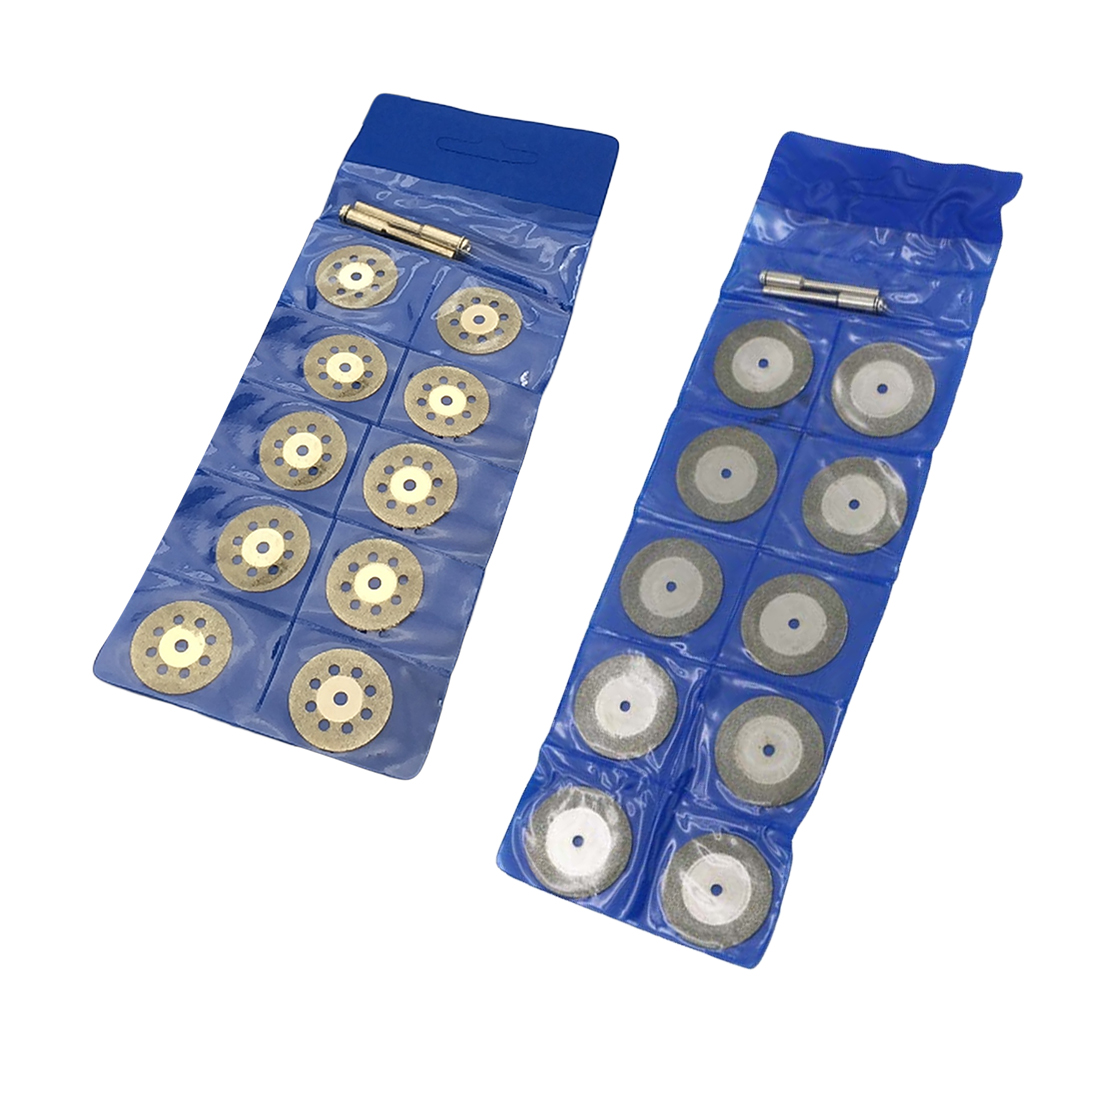 10pc 22mm 30mm Dremel Diamond Cutting Disc For Dremel Rotary Tools Accessories With Mandrel 3.0mm